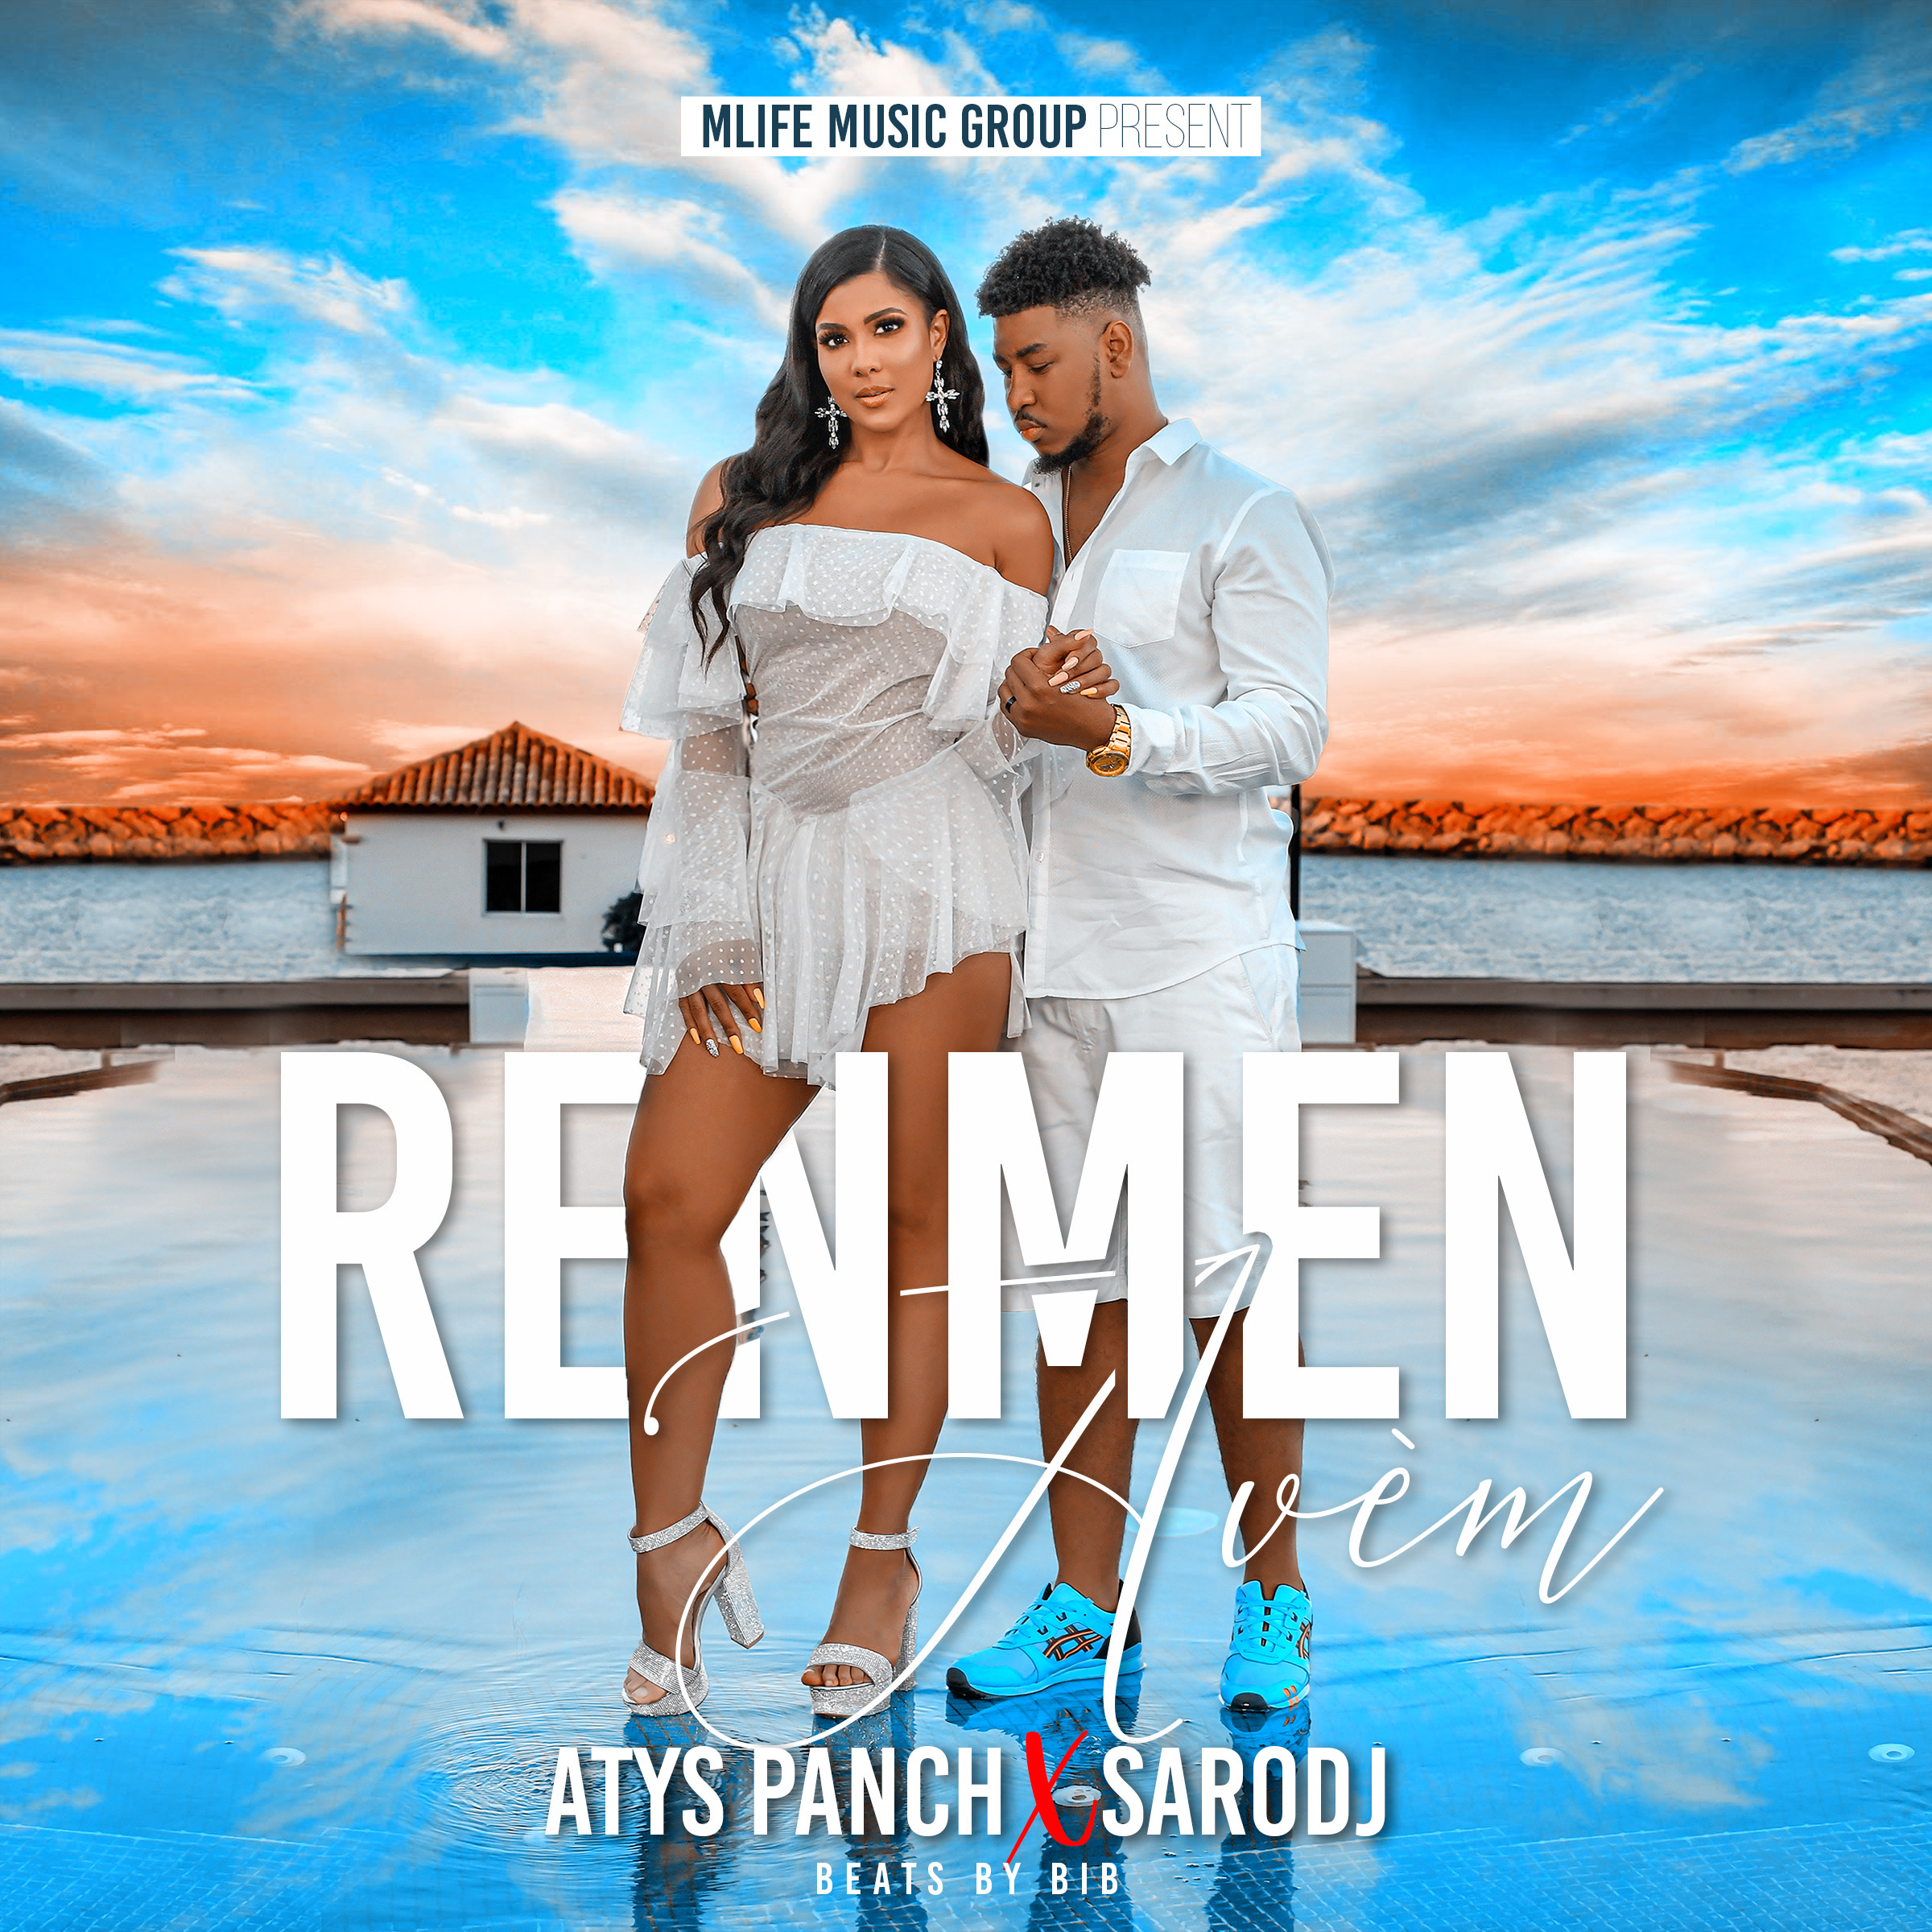 """Renmen Avèm"" by Atys Panch ft. Sarodj Bertin Released by MLife Music Group"